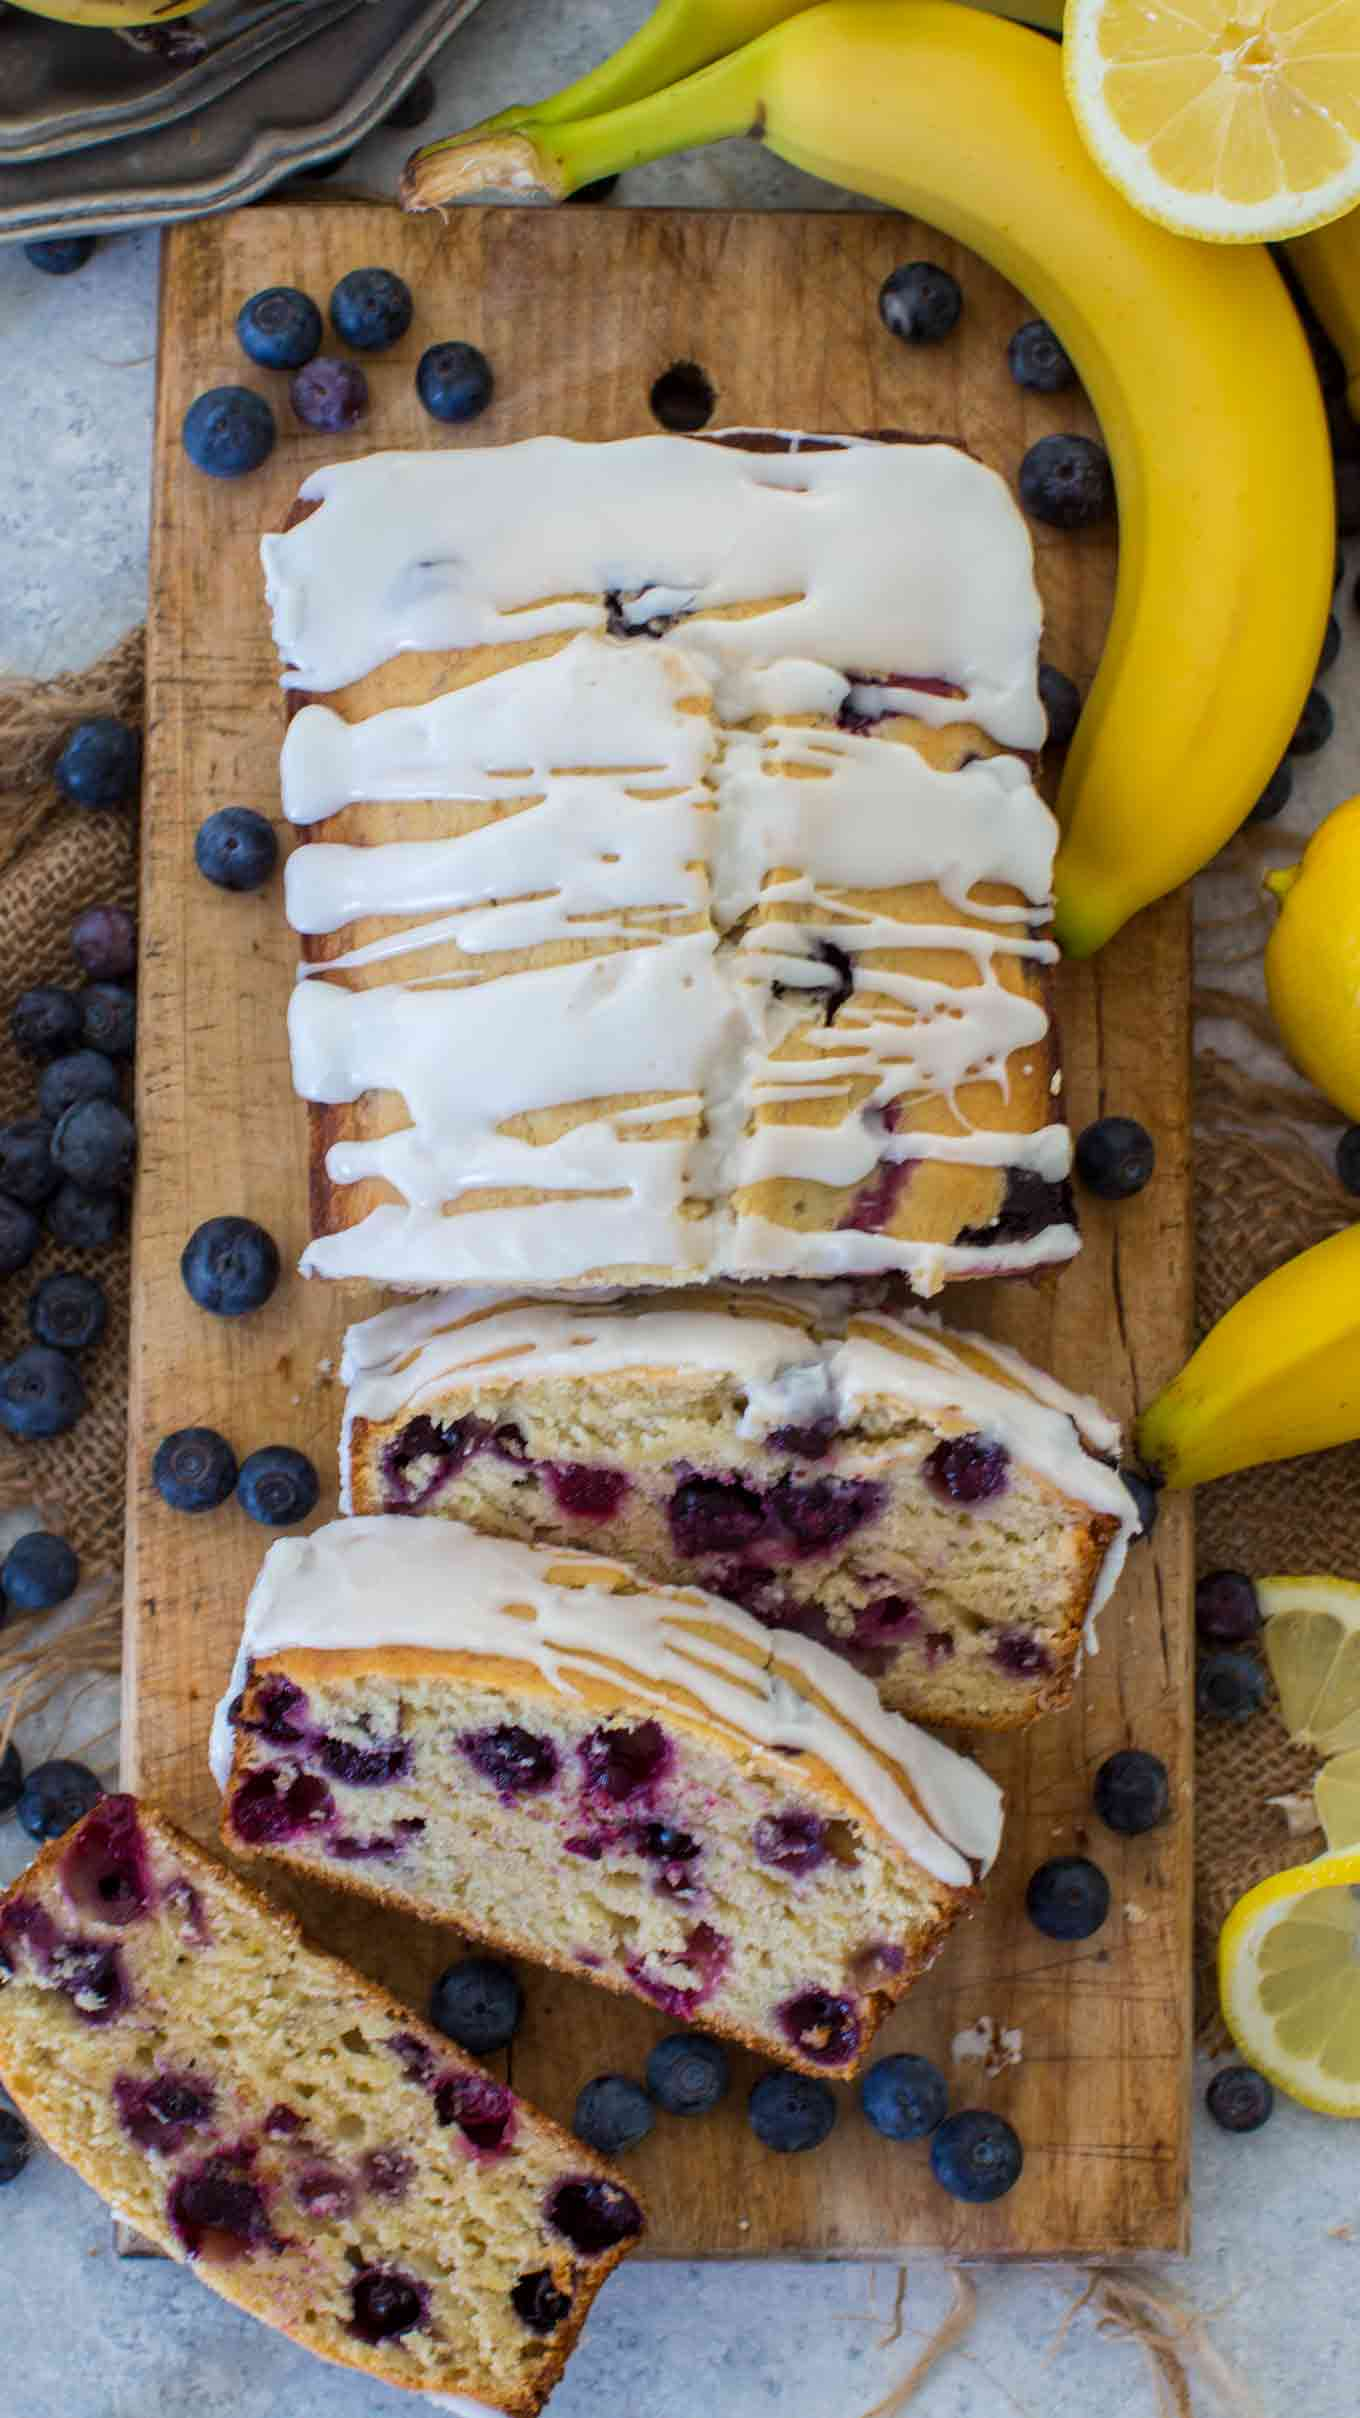 Quick and Easy Lemon Desserts - Blueberry Banana Bread